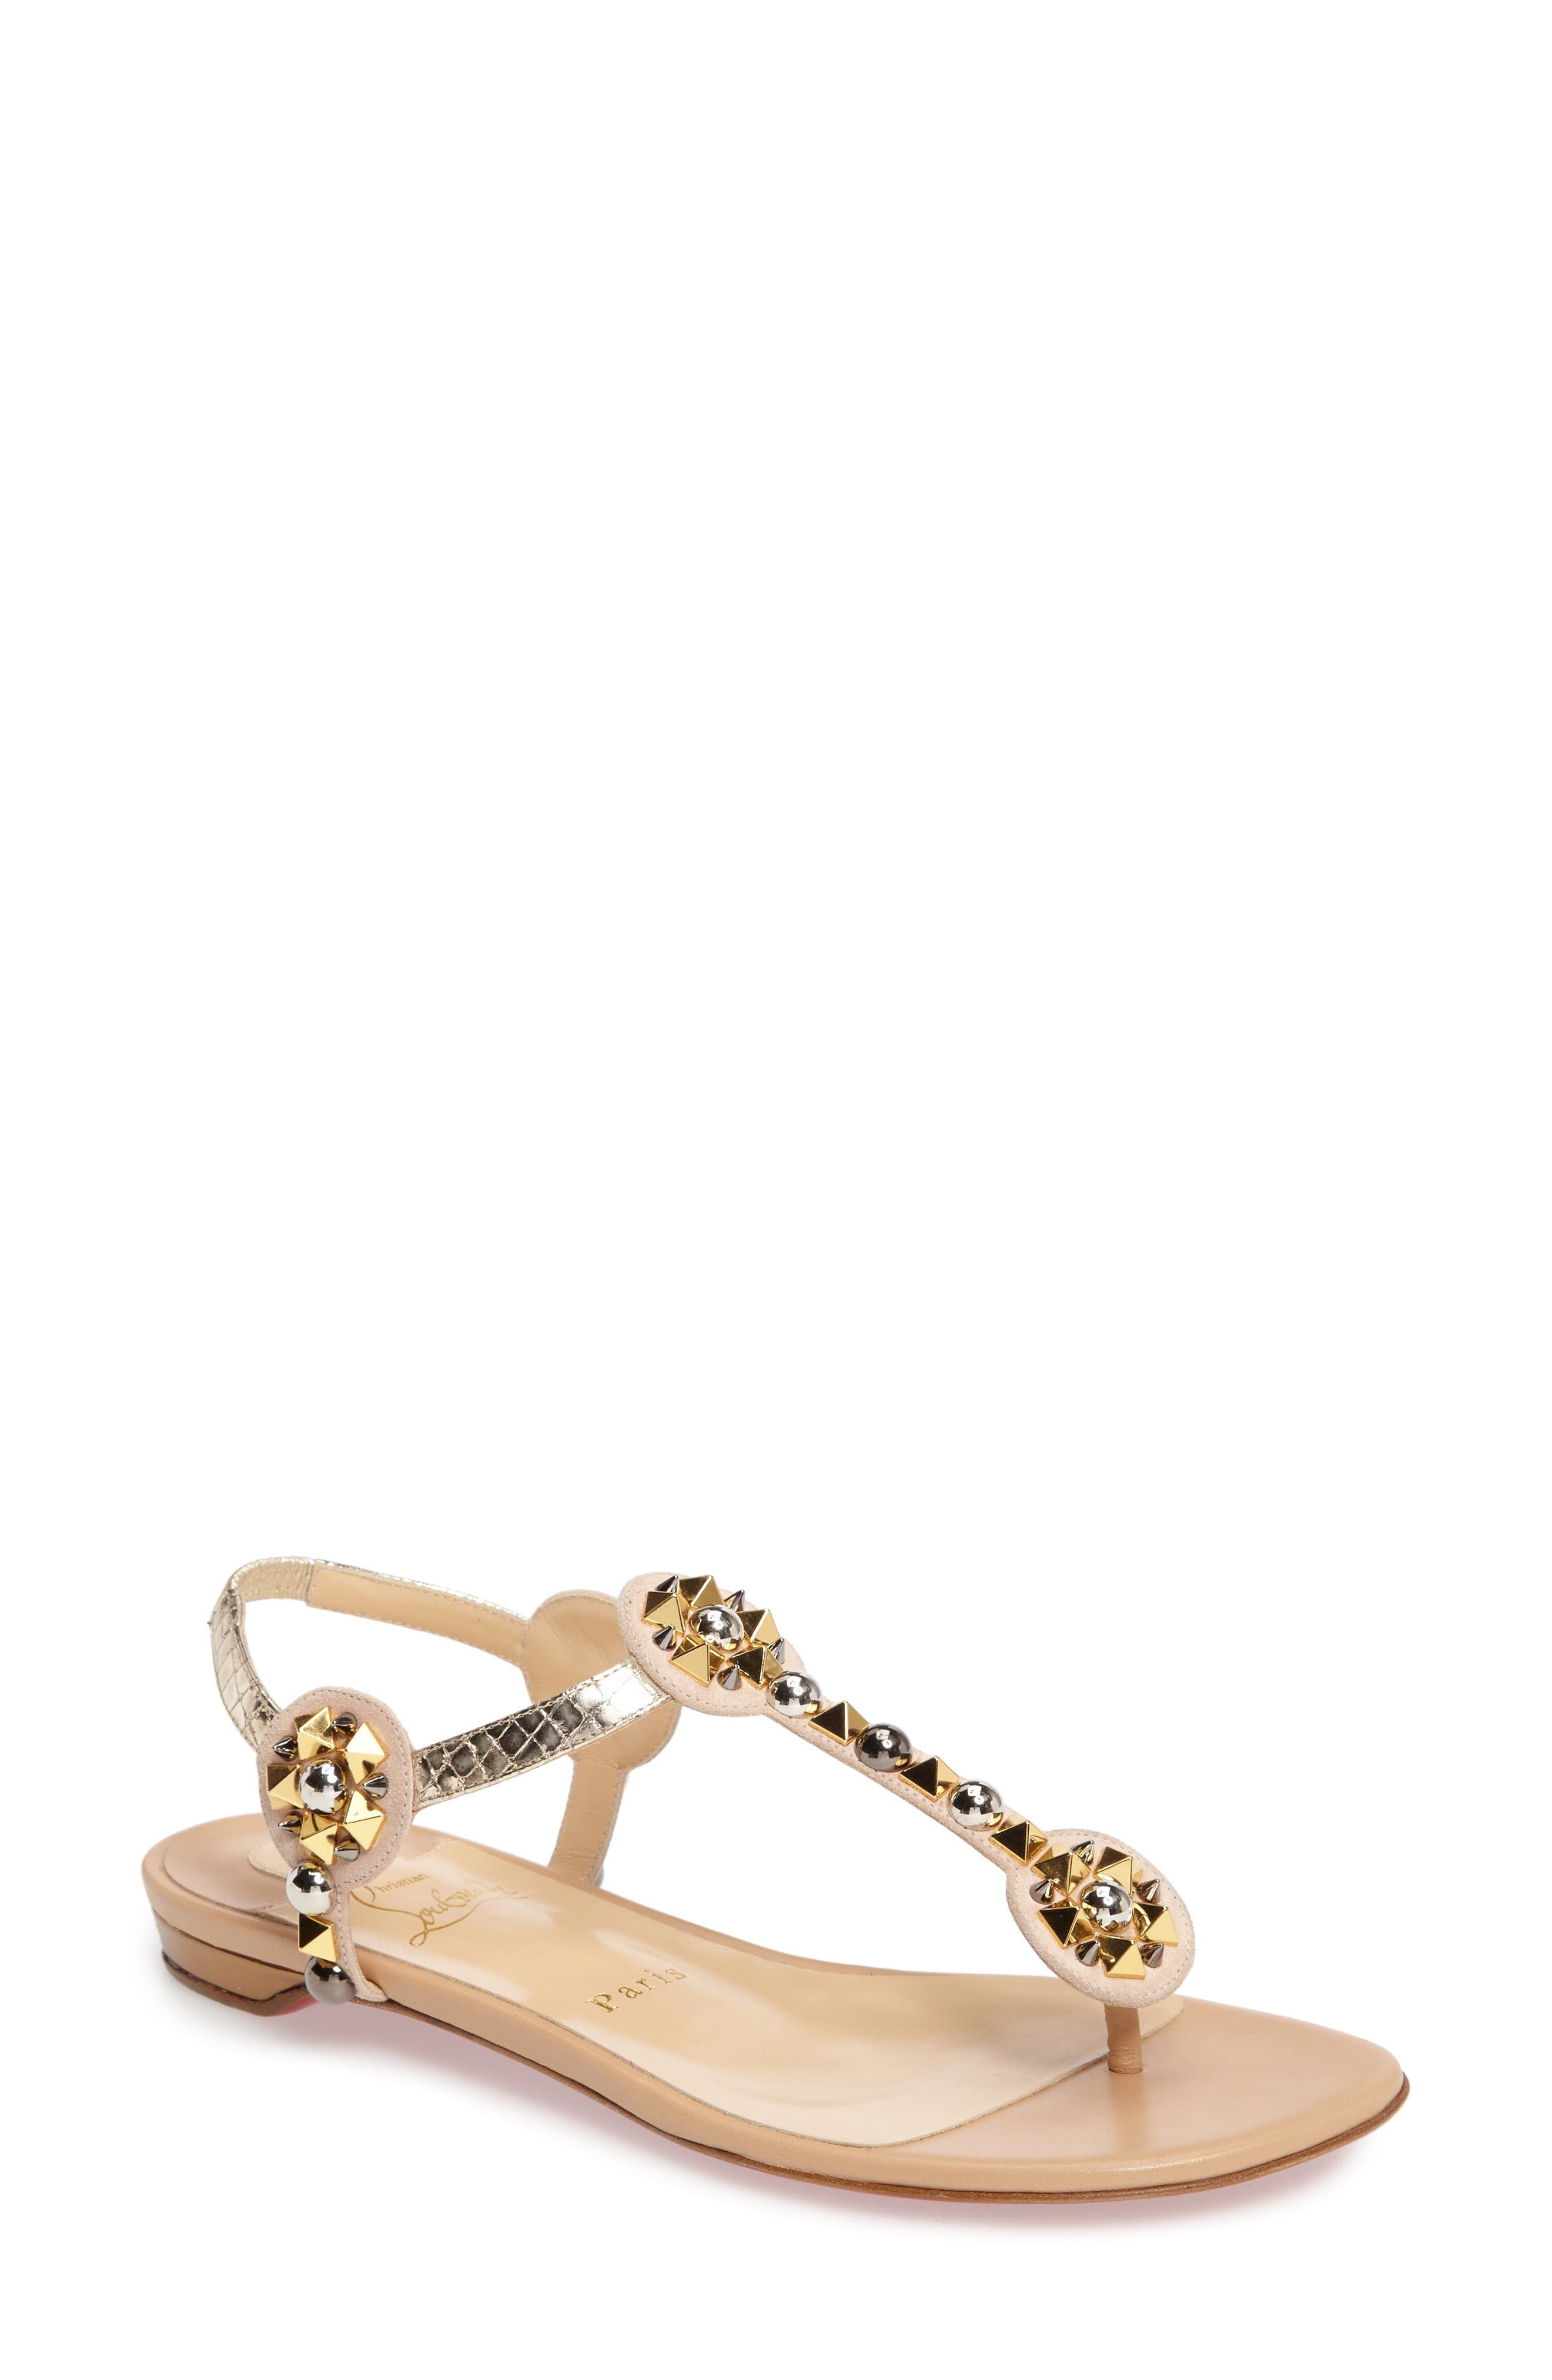 Kaleidra T-Strap Sandal,                             Main thumbnail 1, color,                             Nude Leather